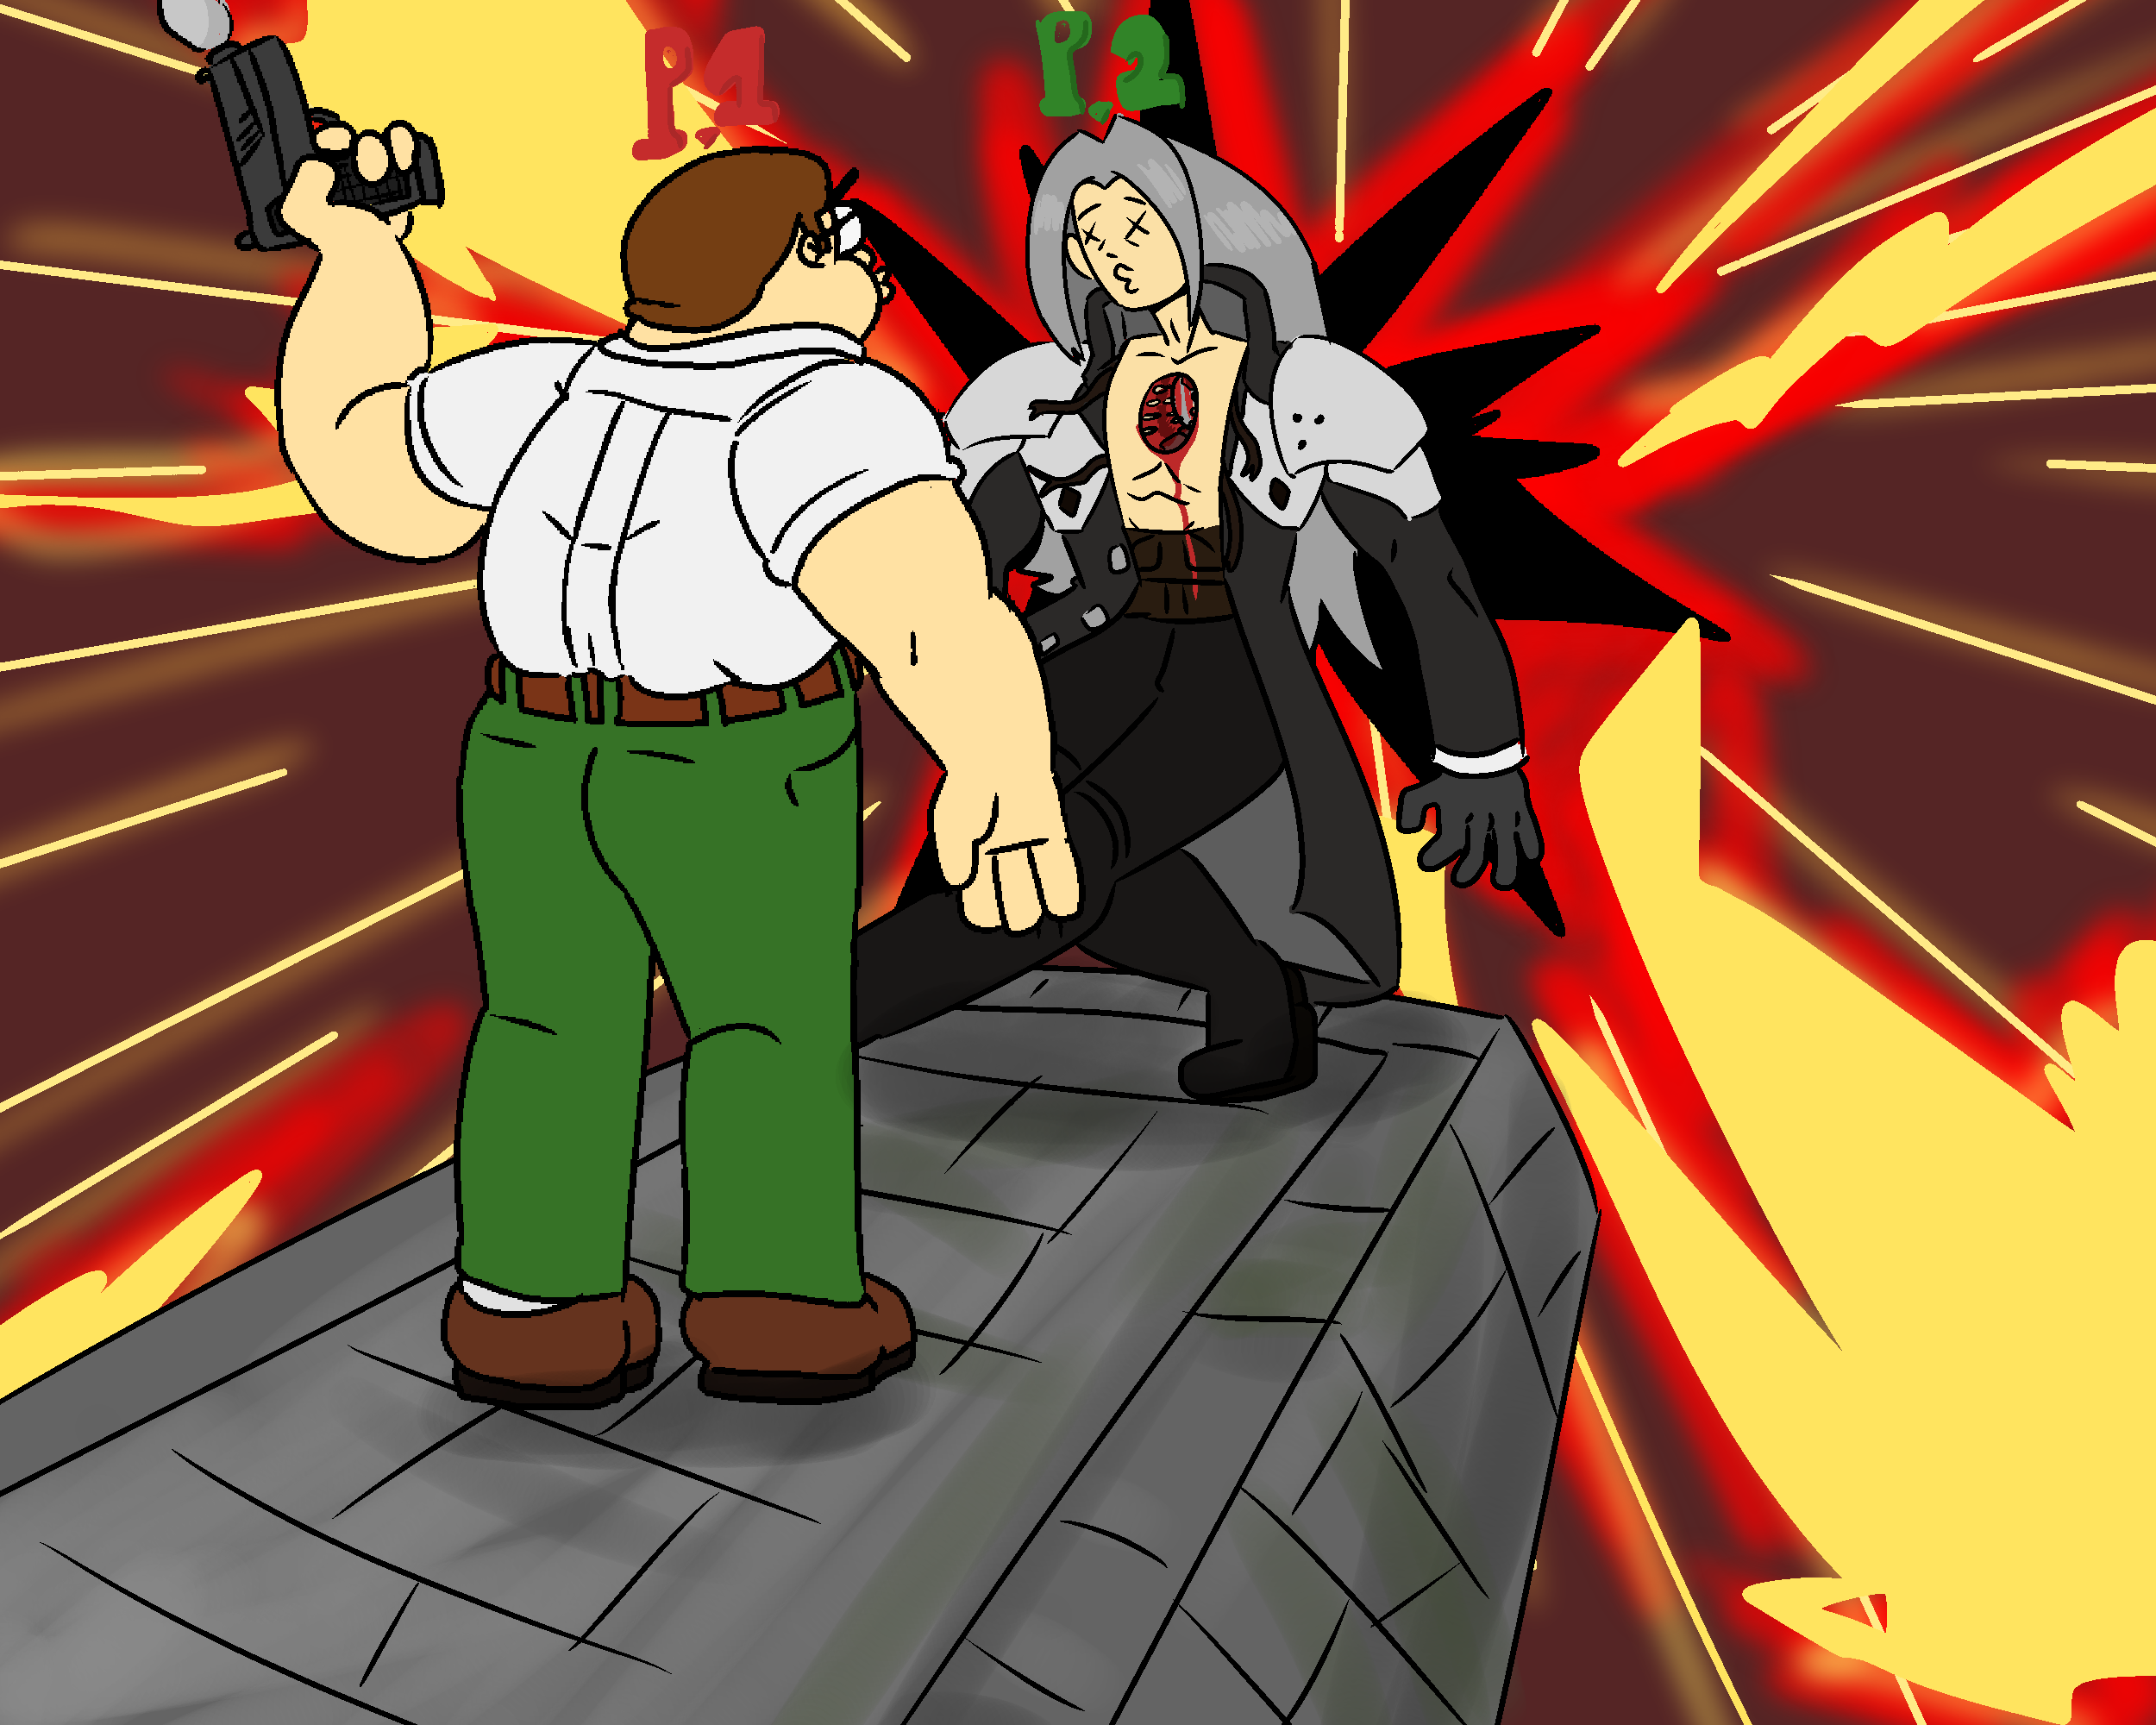 Art Raffle Prize: Peter Griffin Kills Sephiroth in Smash